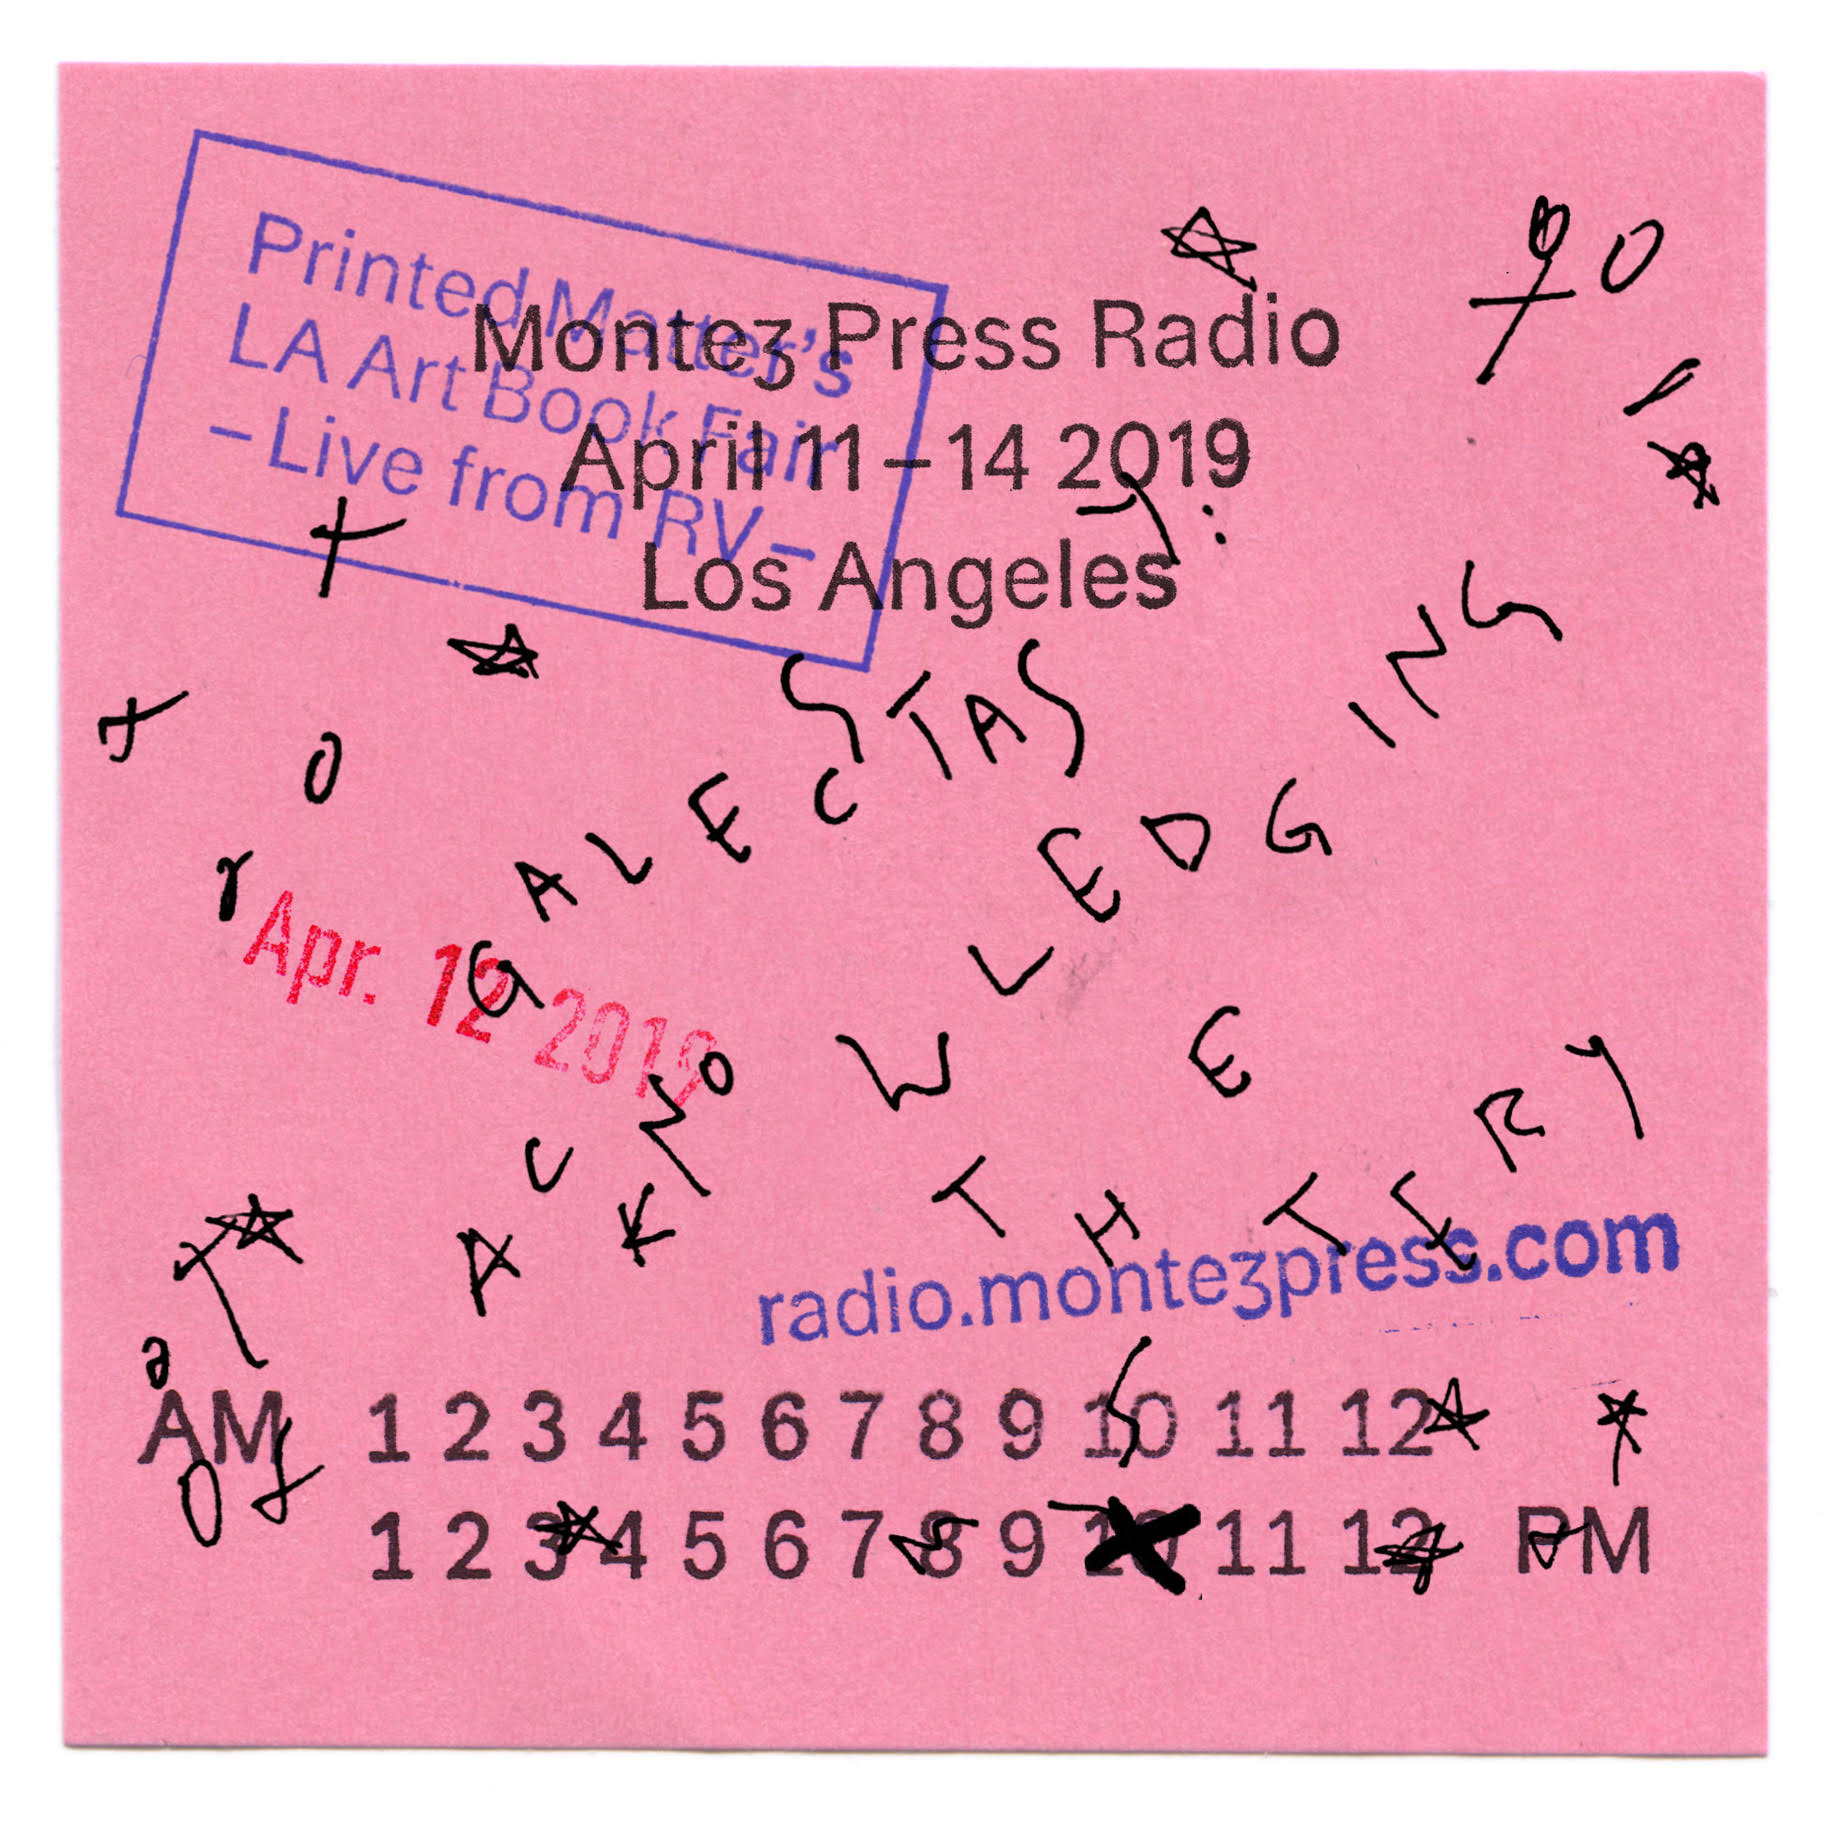 Live at L.A. Art book fair with Montez Press RAdio 2019 by GALECSTASY - GALECSTASY is raquel bell & jared